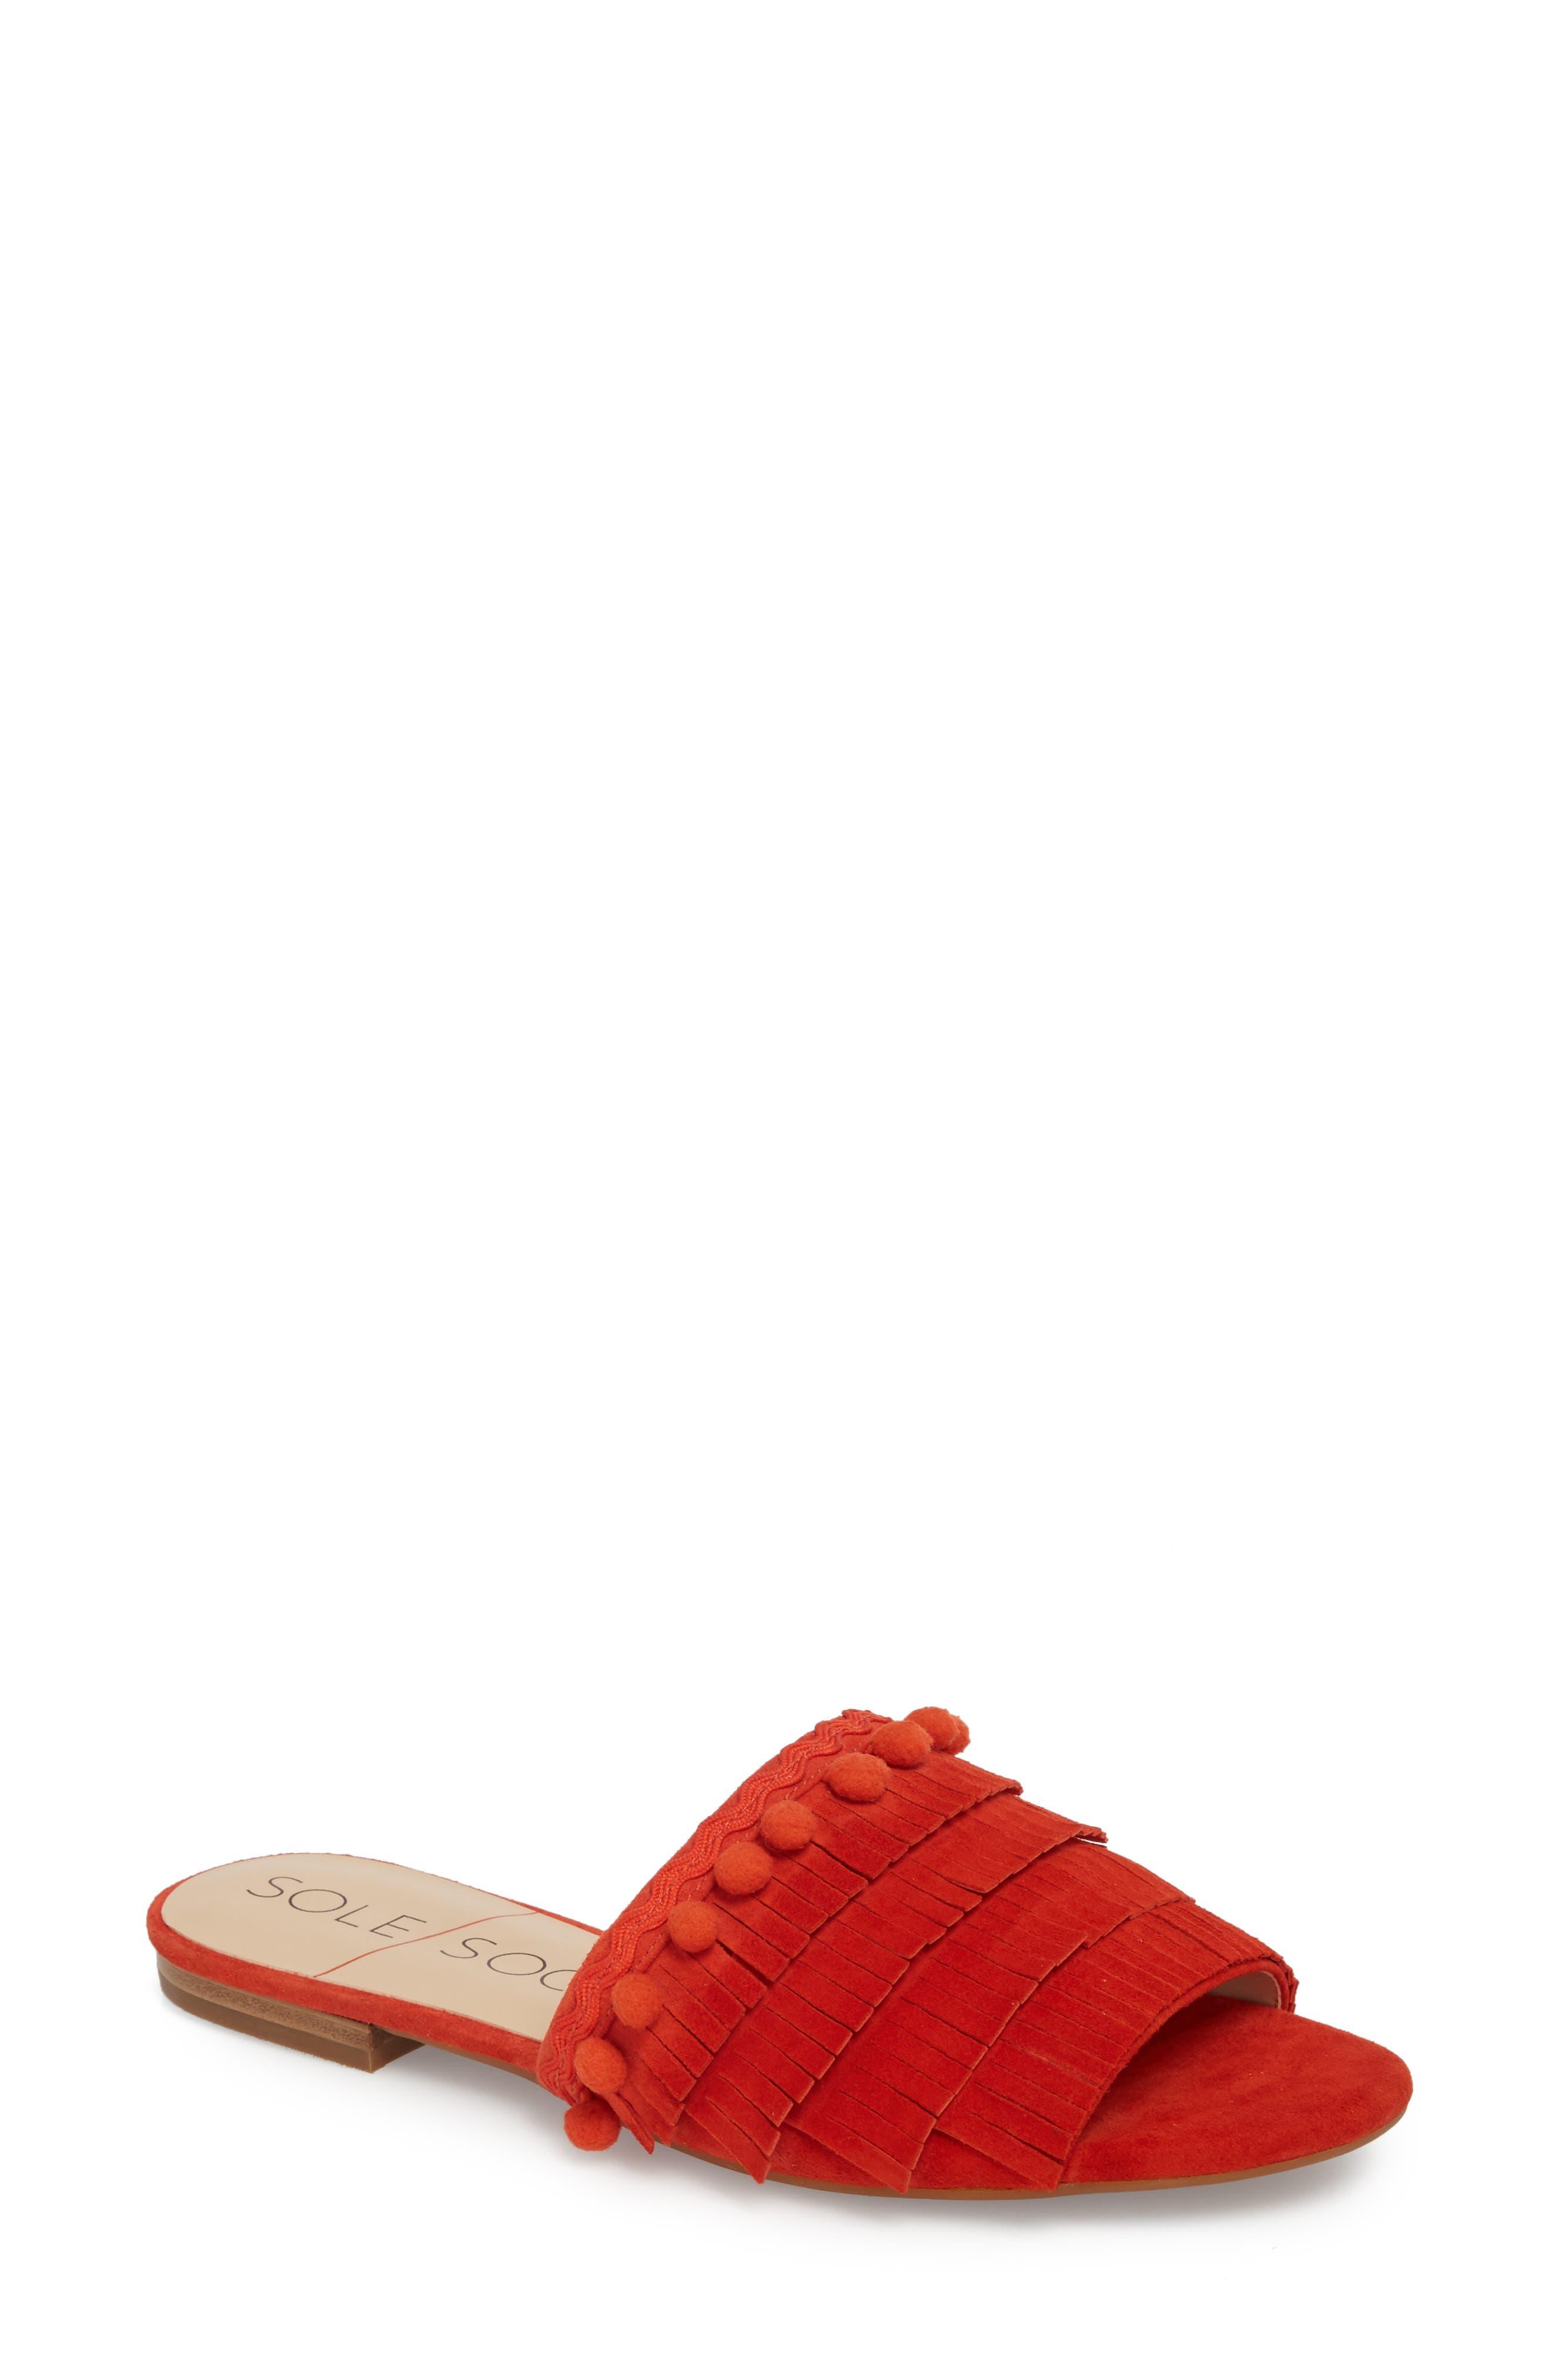 Malina Mule,                         Main,                         color, Bright Coral Suede